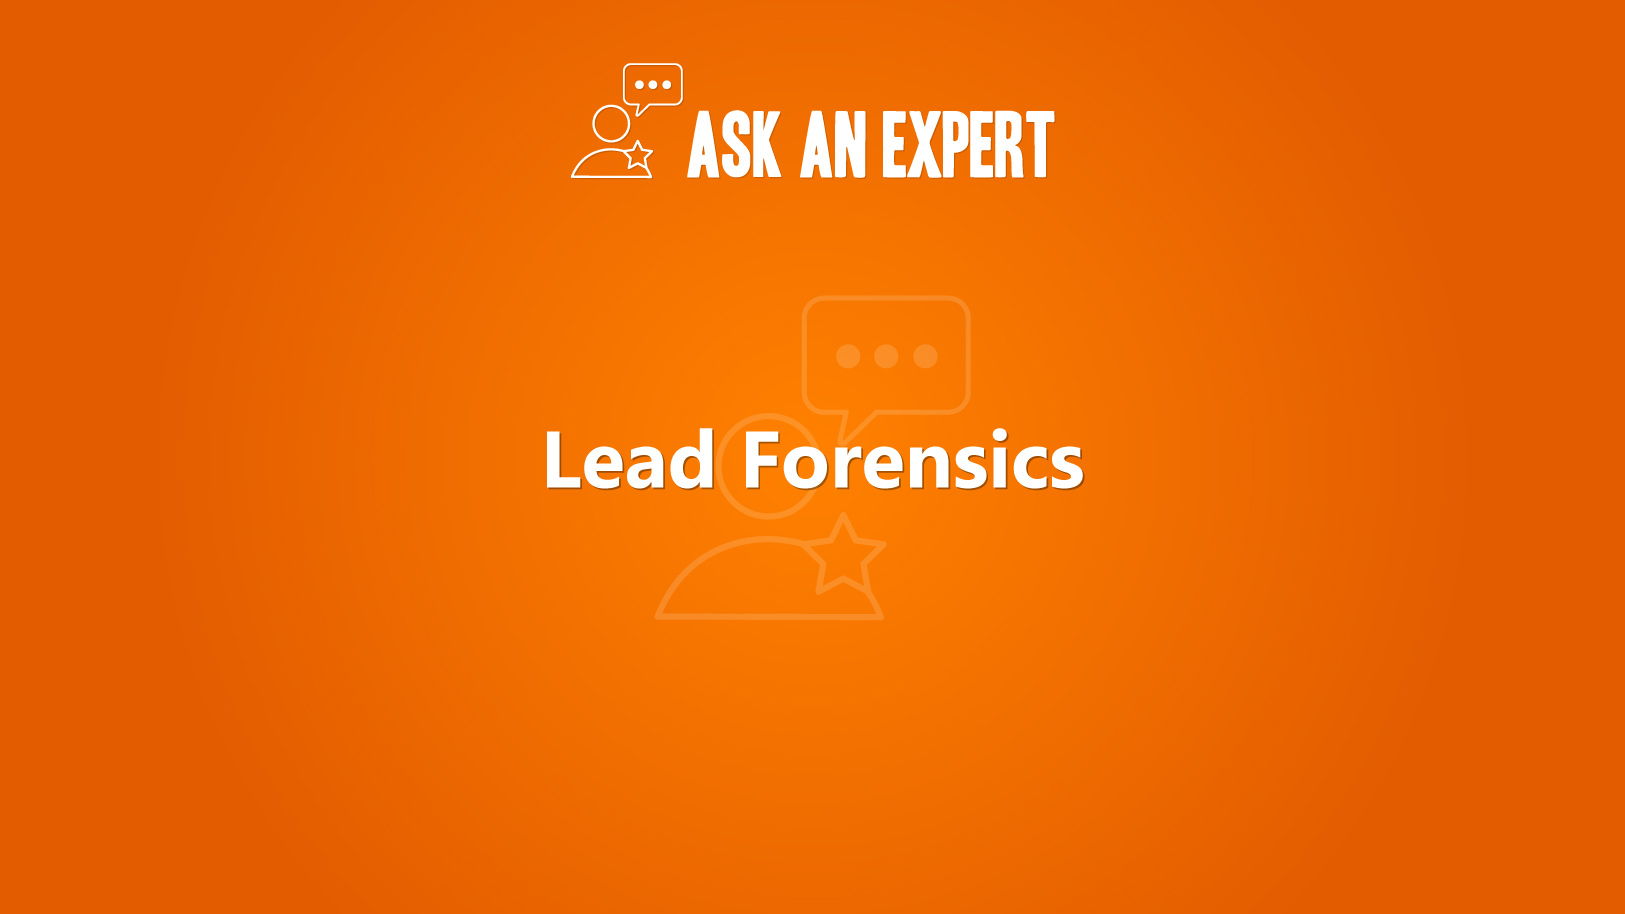 Lead Forensics - Ask an Expert